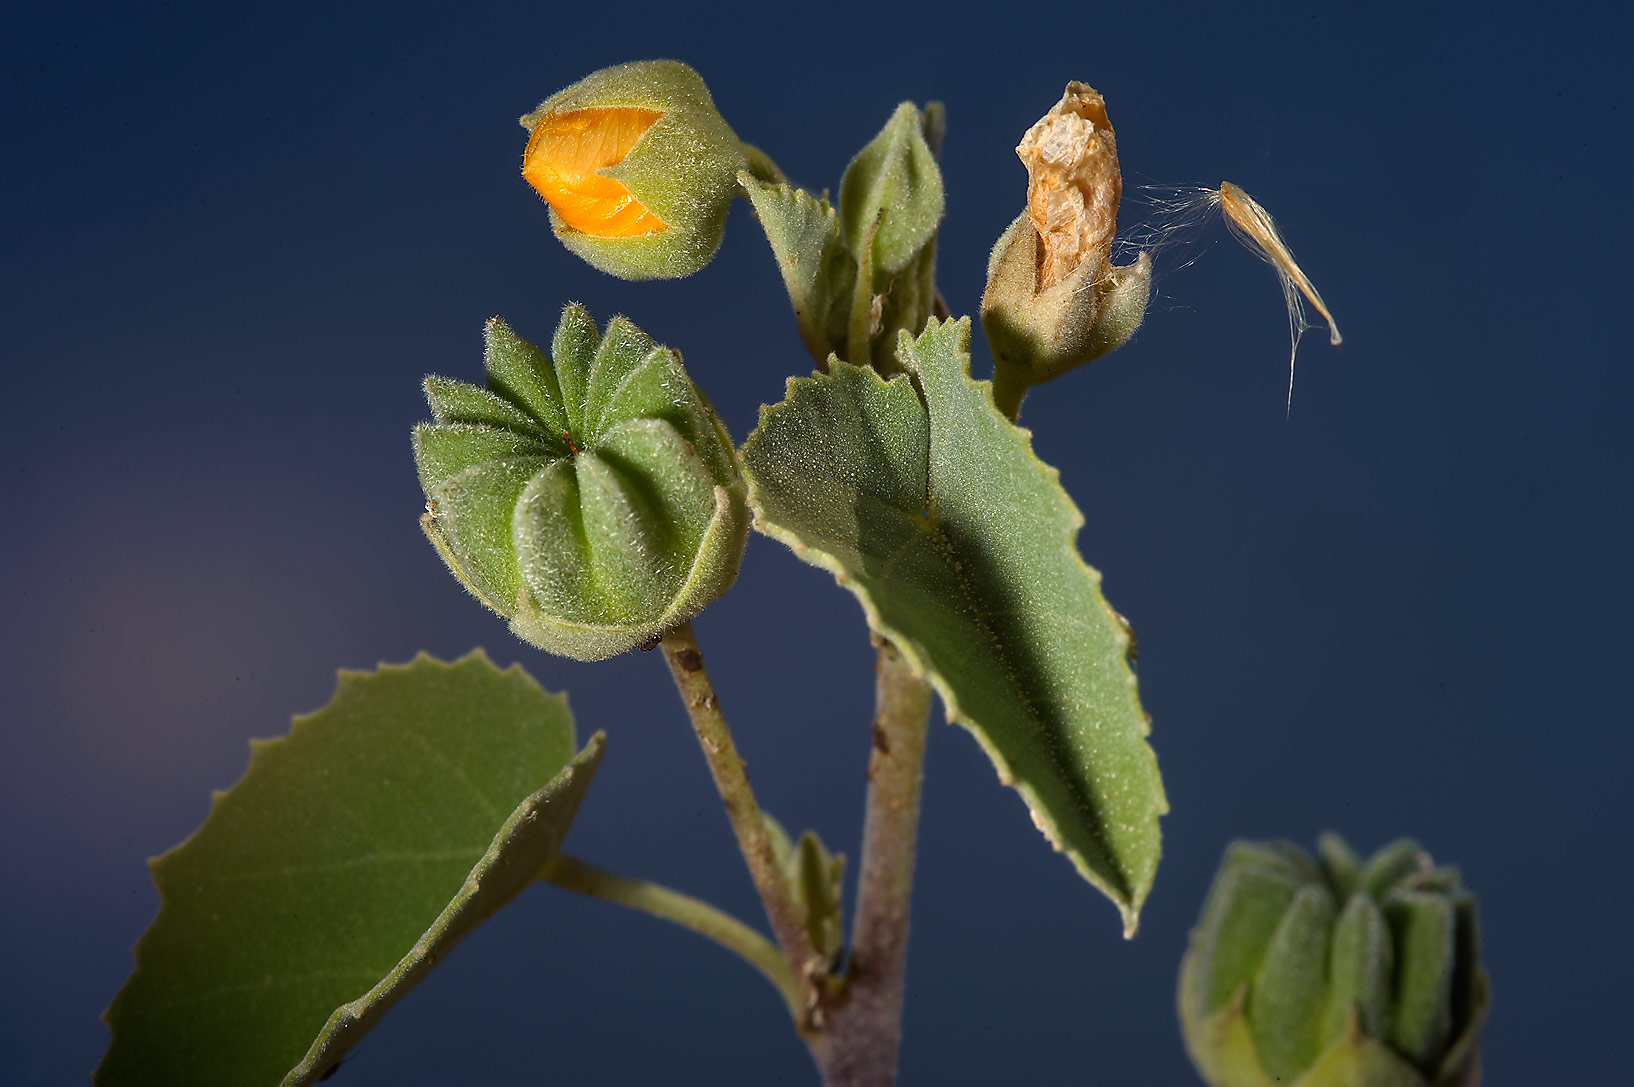 Texas Indian-mallow (Abutilon fruticosum...farms area, in north-western Qatar